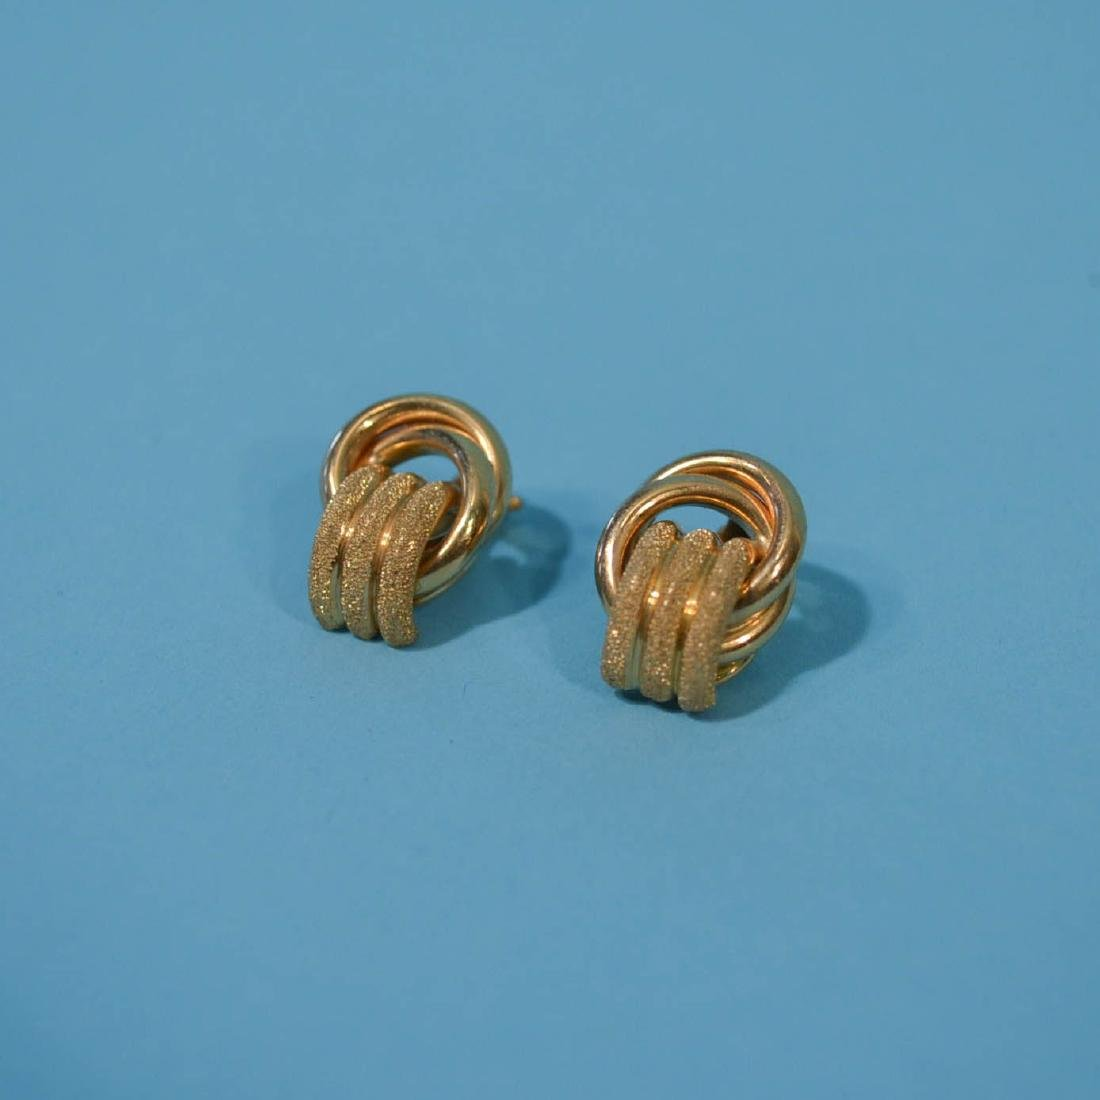 3 Pairs of Classic 14k Gold Earrings - 2